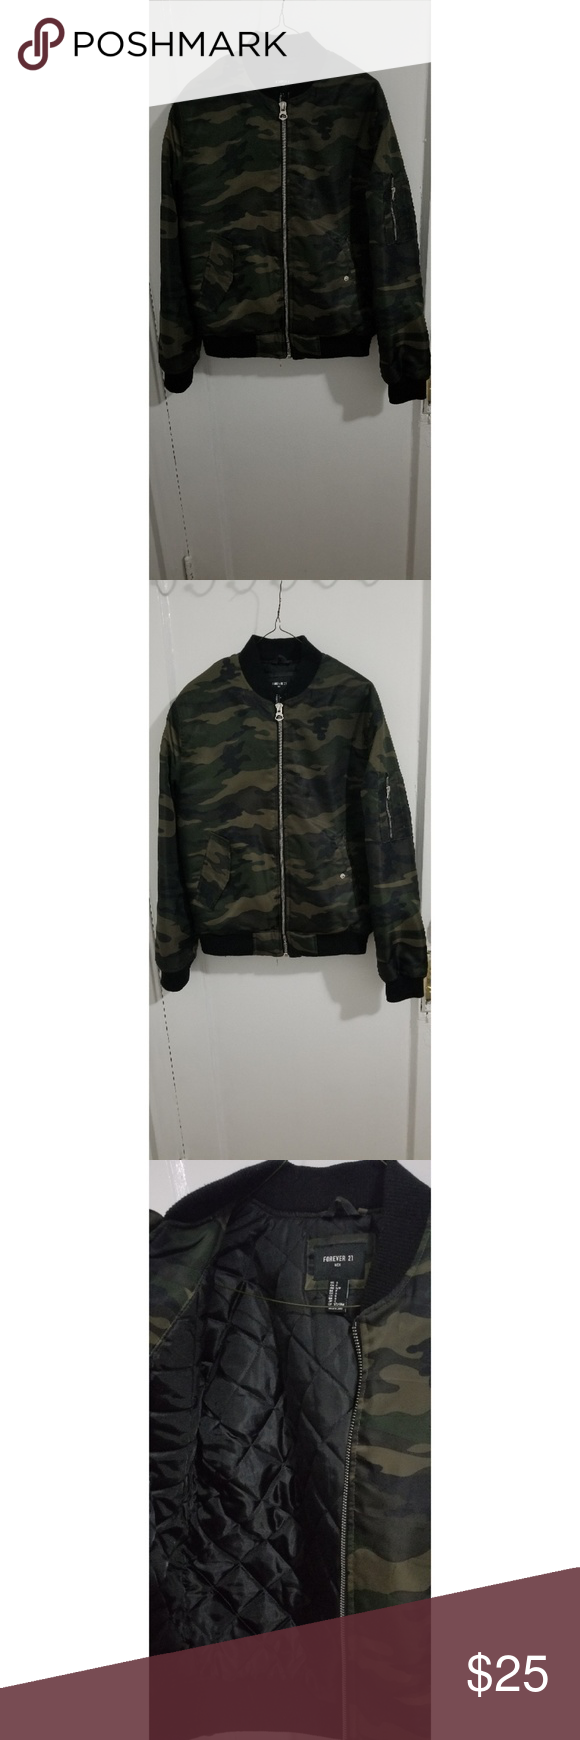 74068155407 Forever21 Army Fatigue bomber jacket Forever21 Army Fatigue bomber jacket